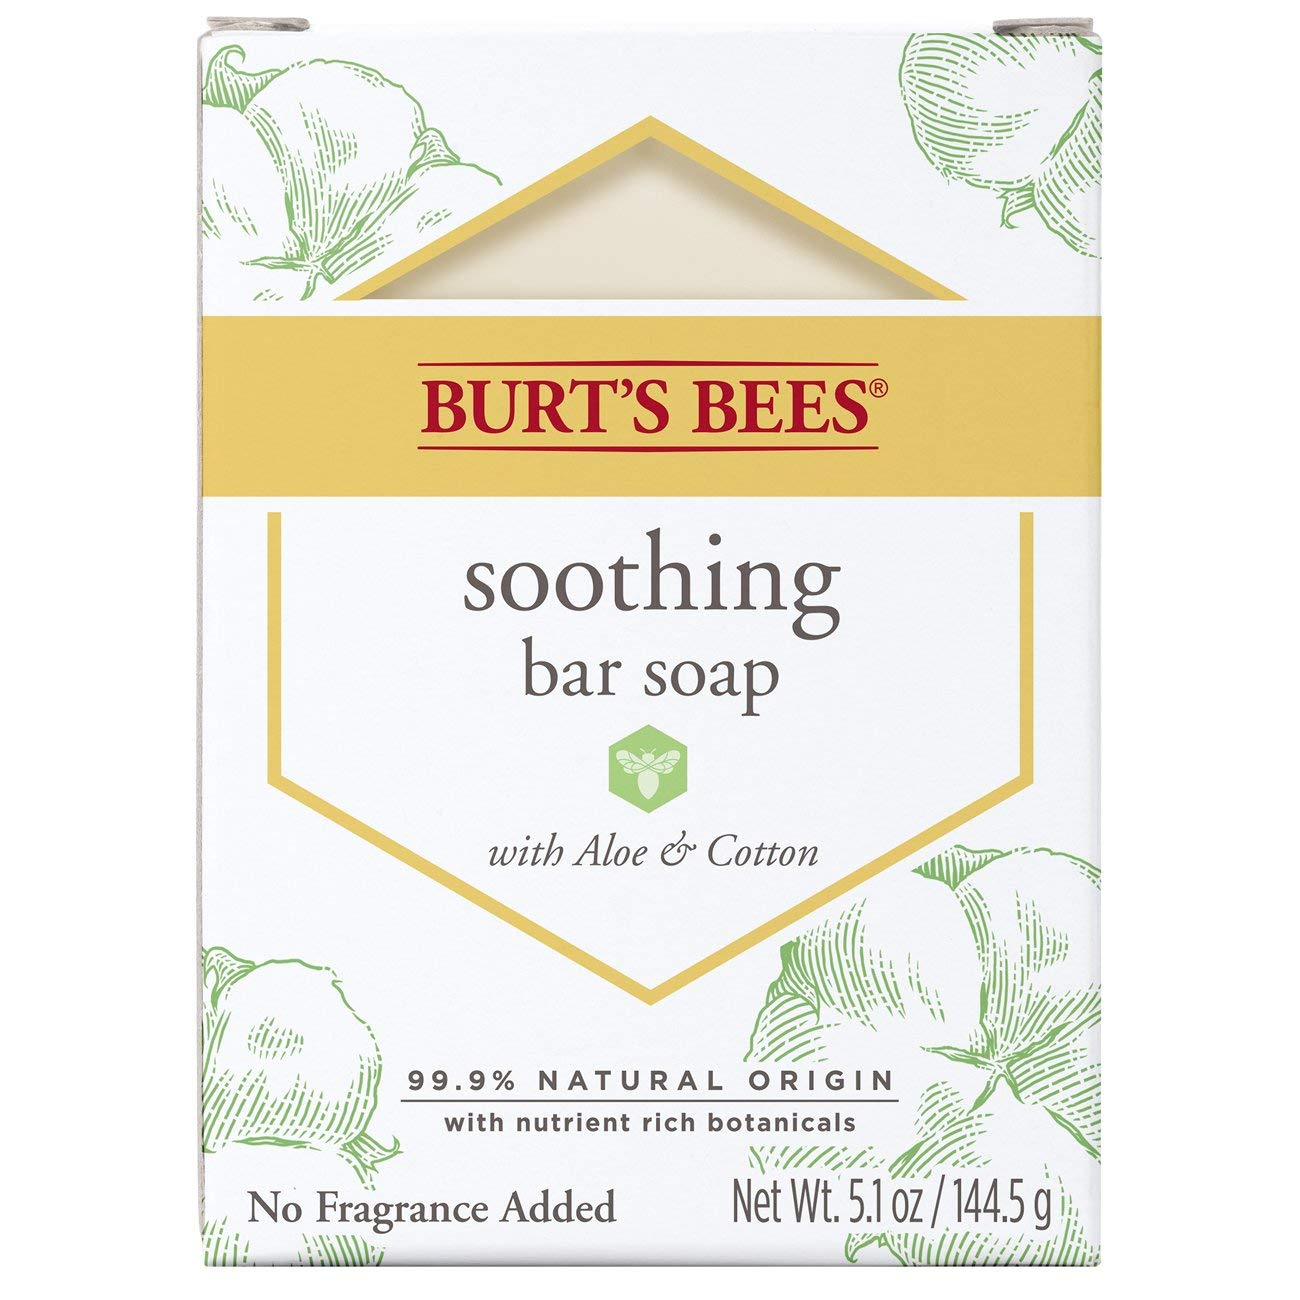 Burt's Bees Bar Soap, Soothing with Aloe & Cotton, 5.1 Ounce